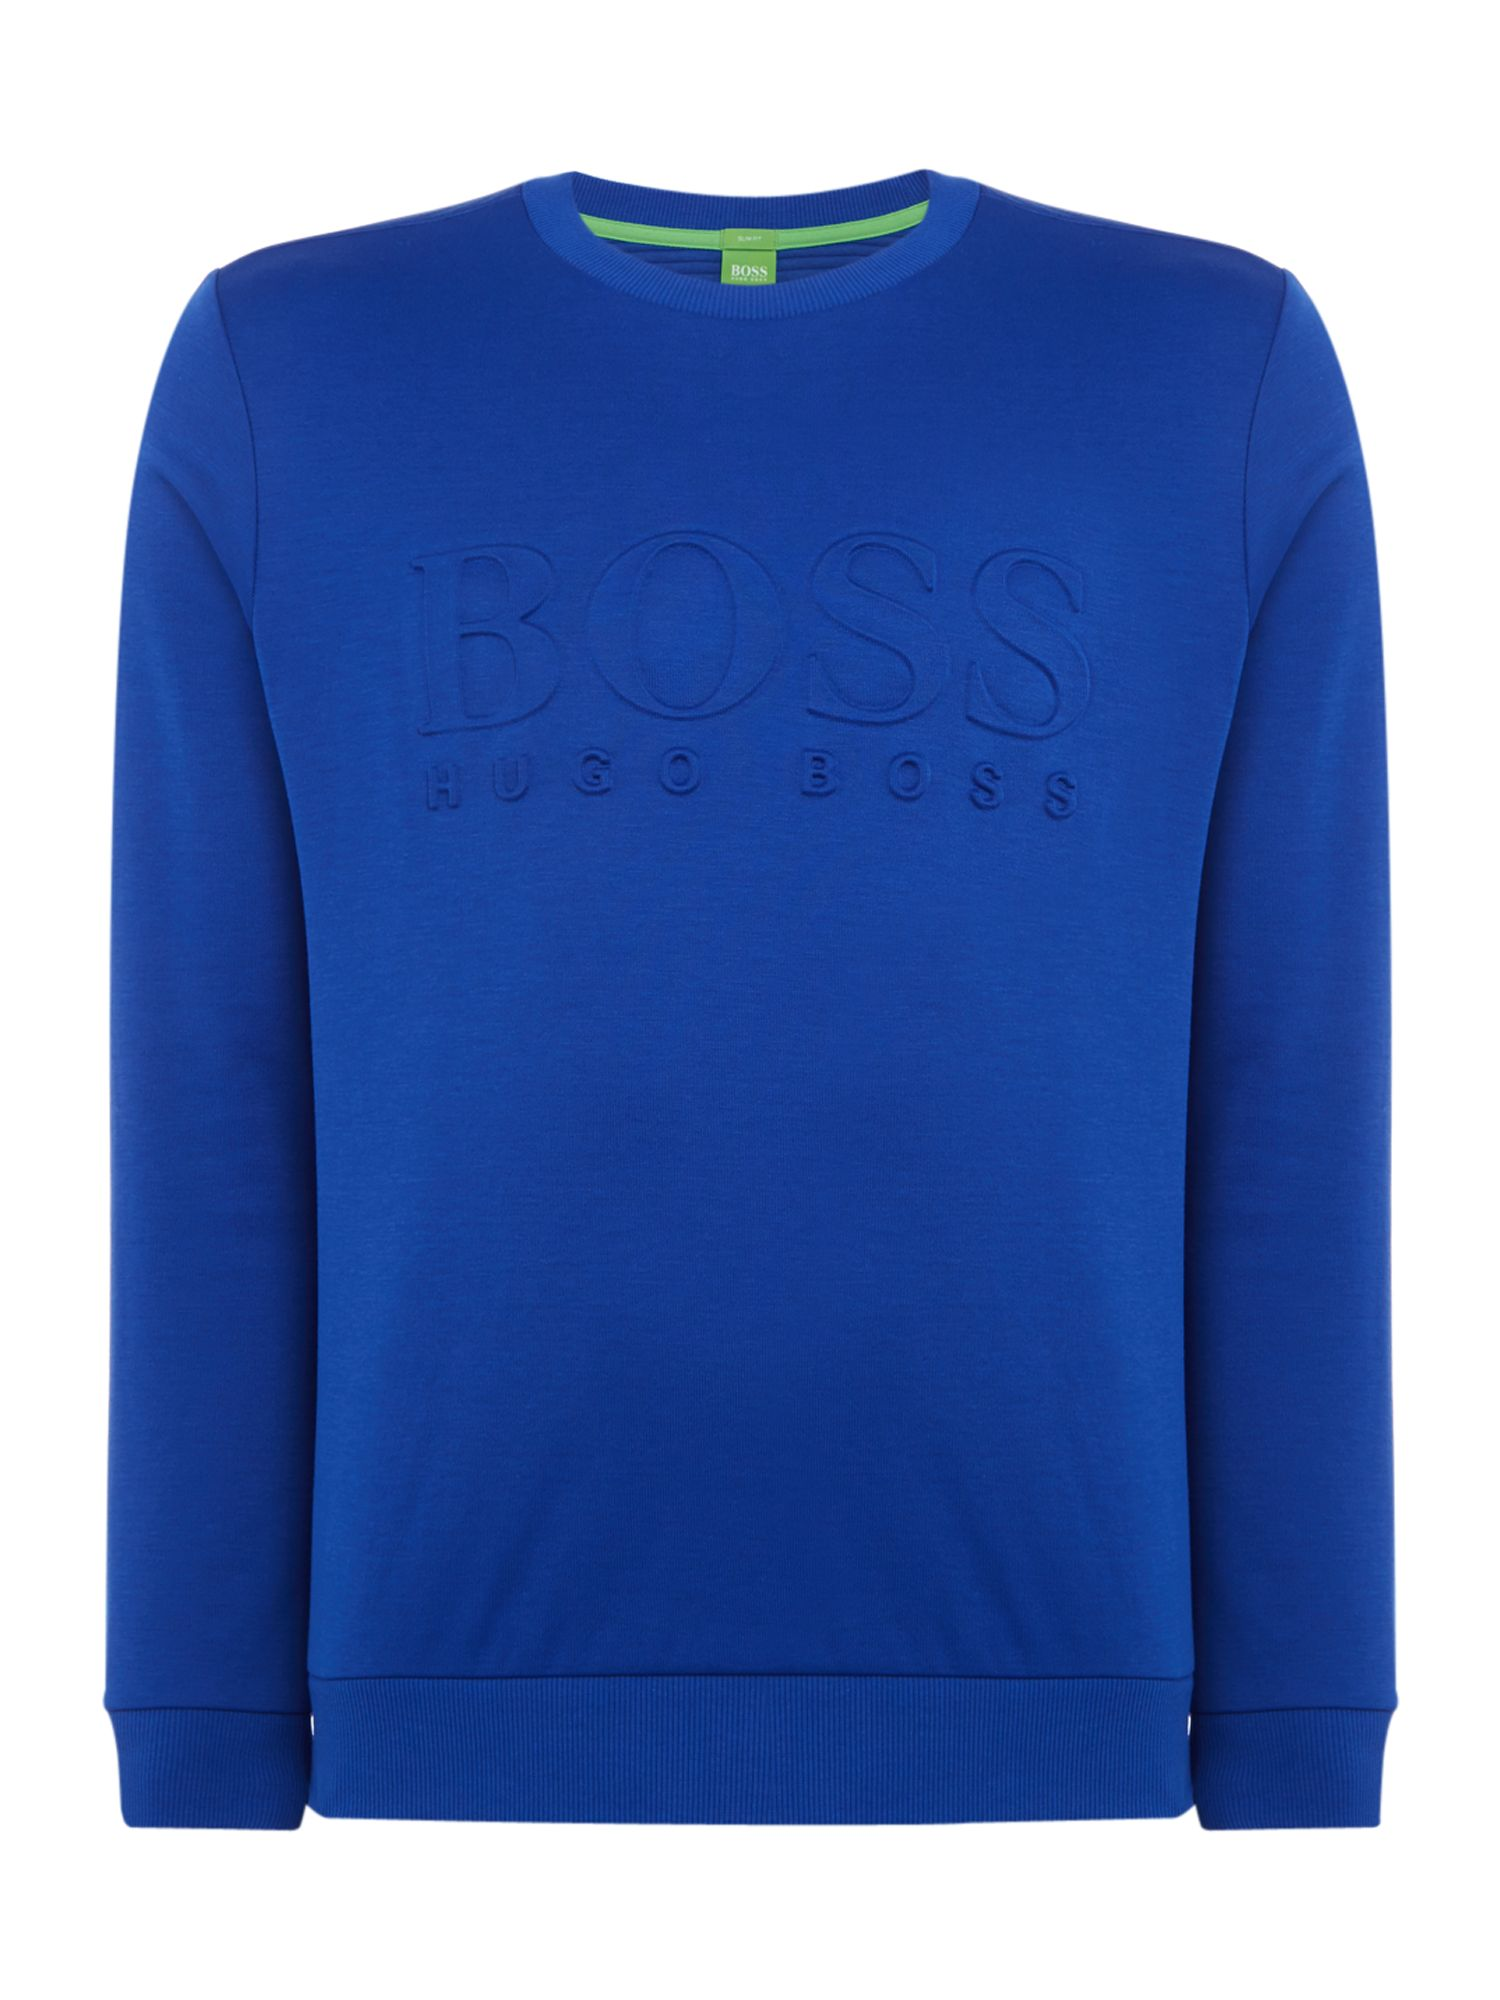 Men's Hugo Boss Salbo crew neck sweatshirt, Blue